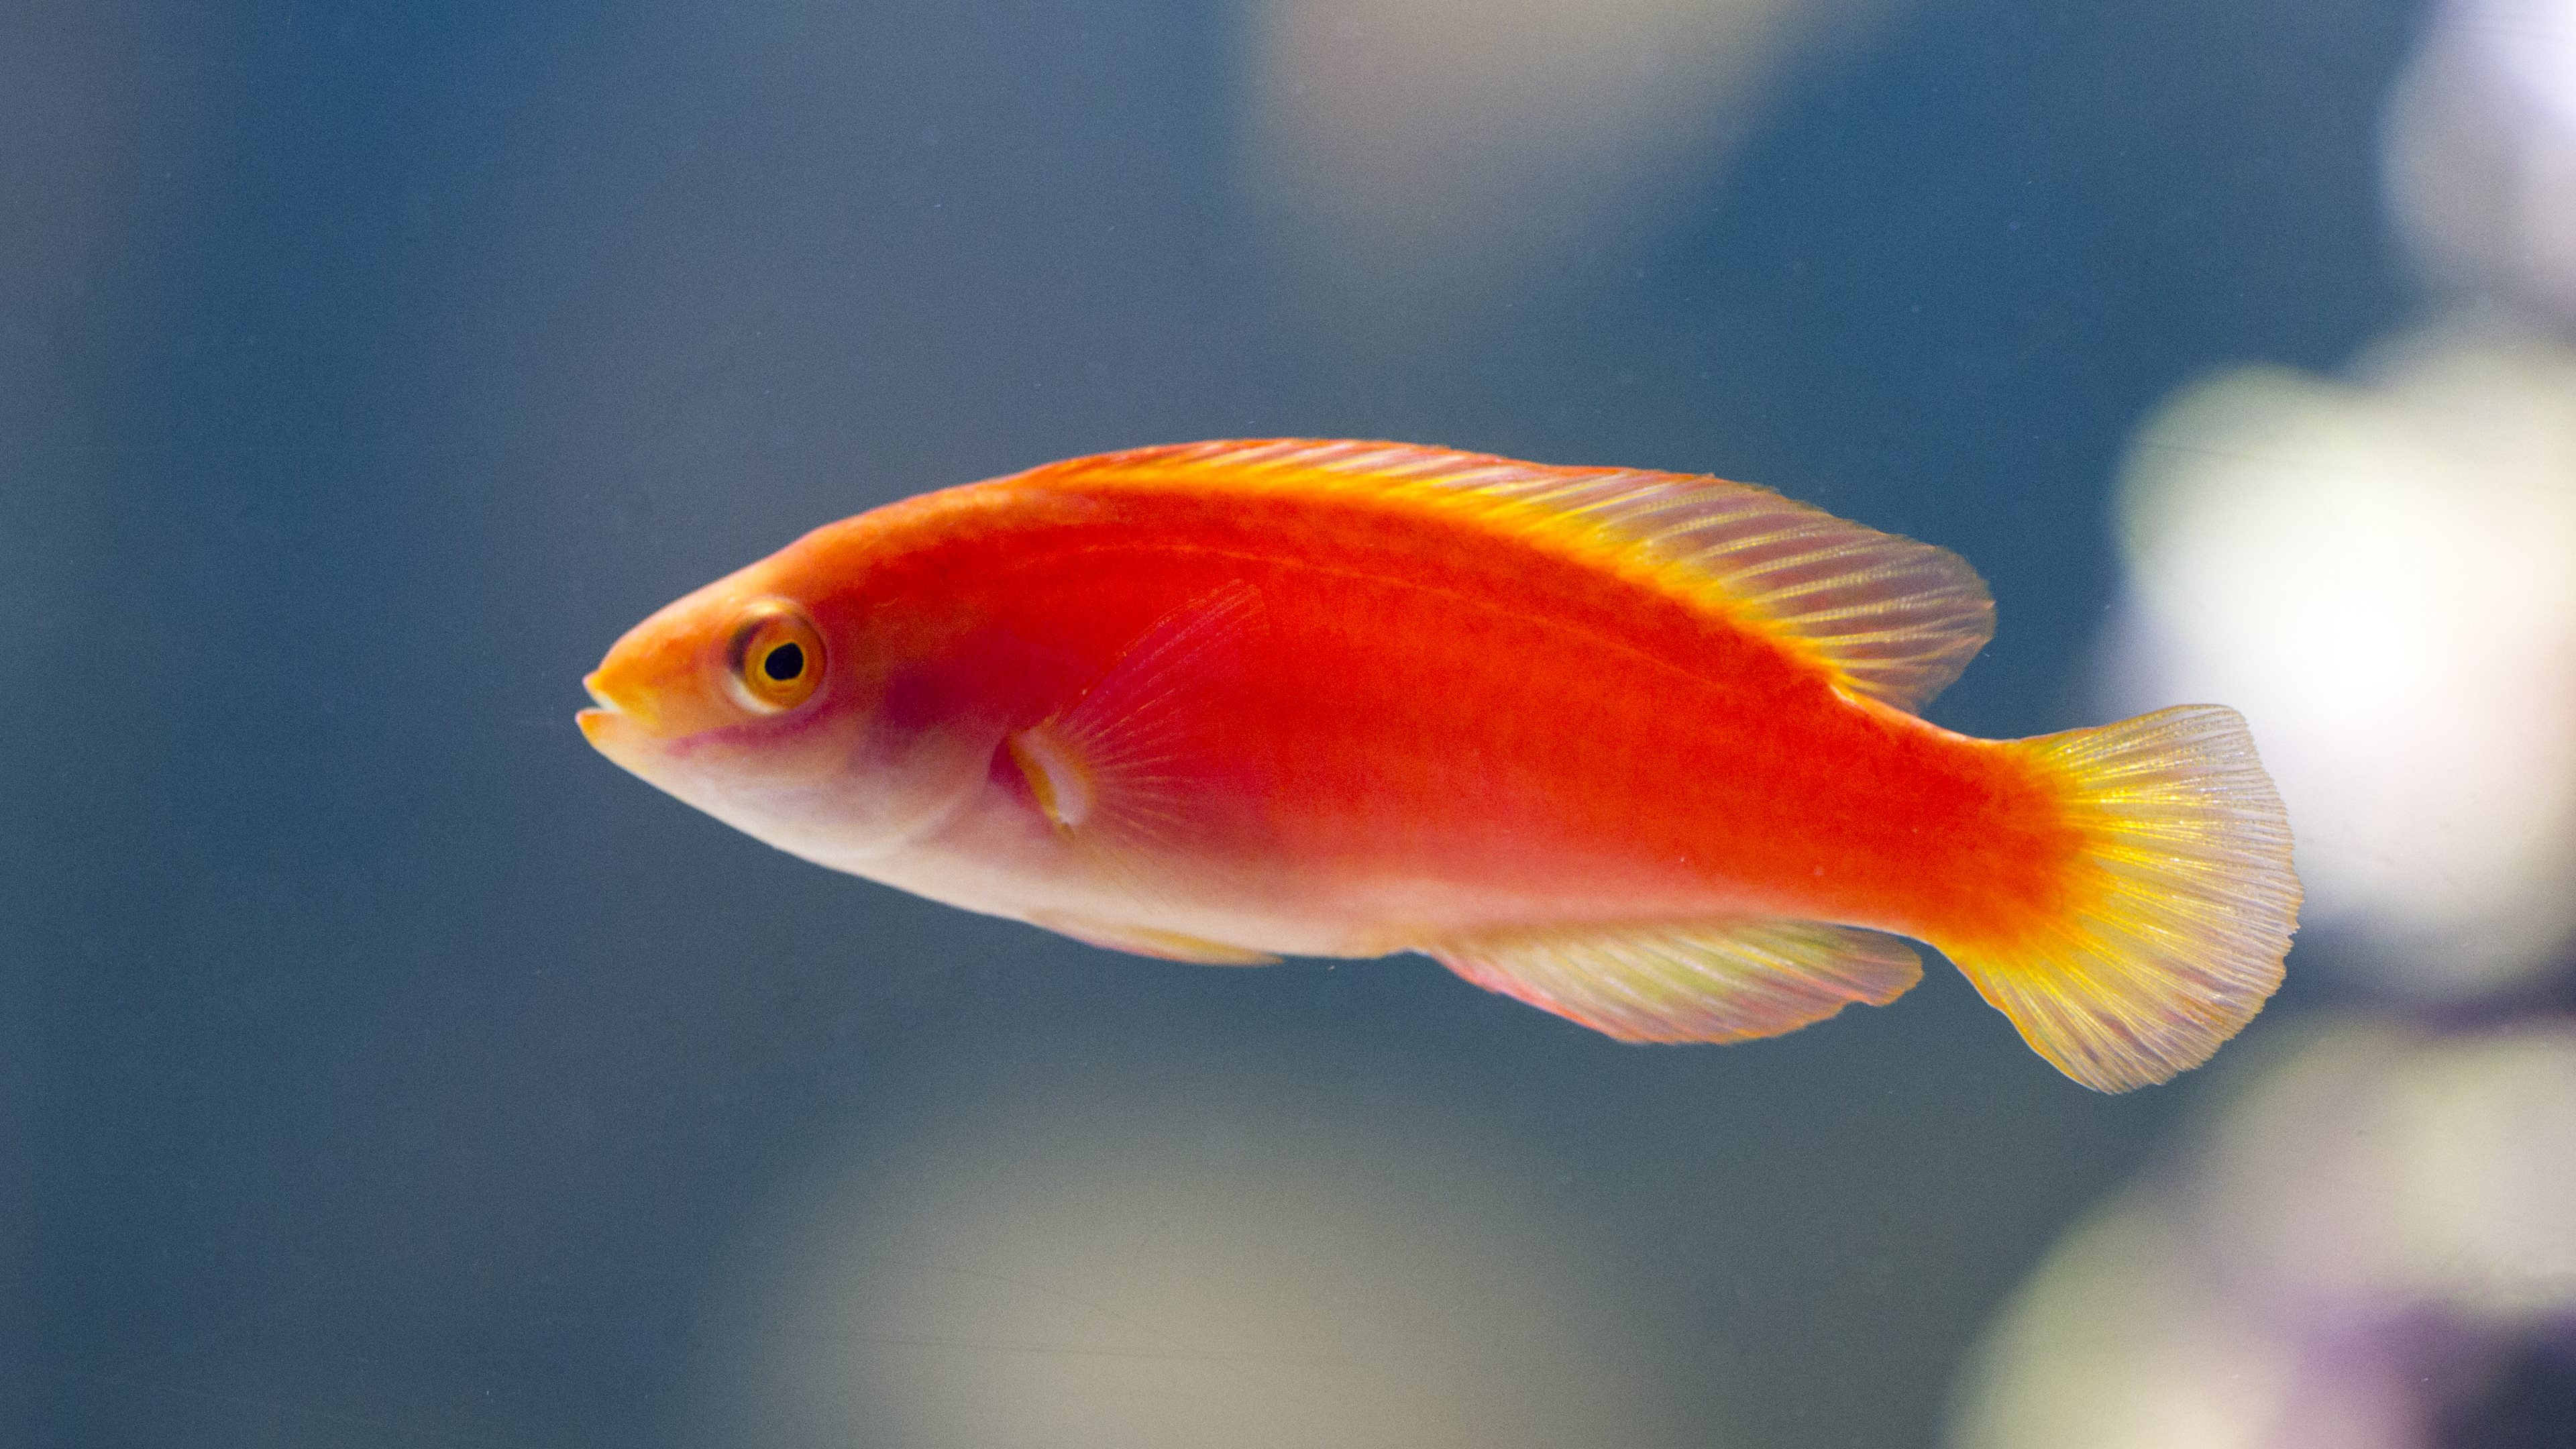 515 Fish HD Wallpapers | Background Images - Wallpaper Abyss - Page 3